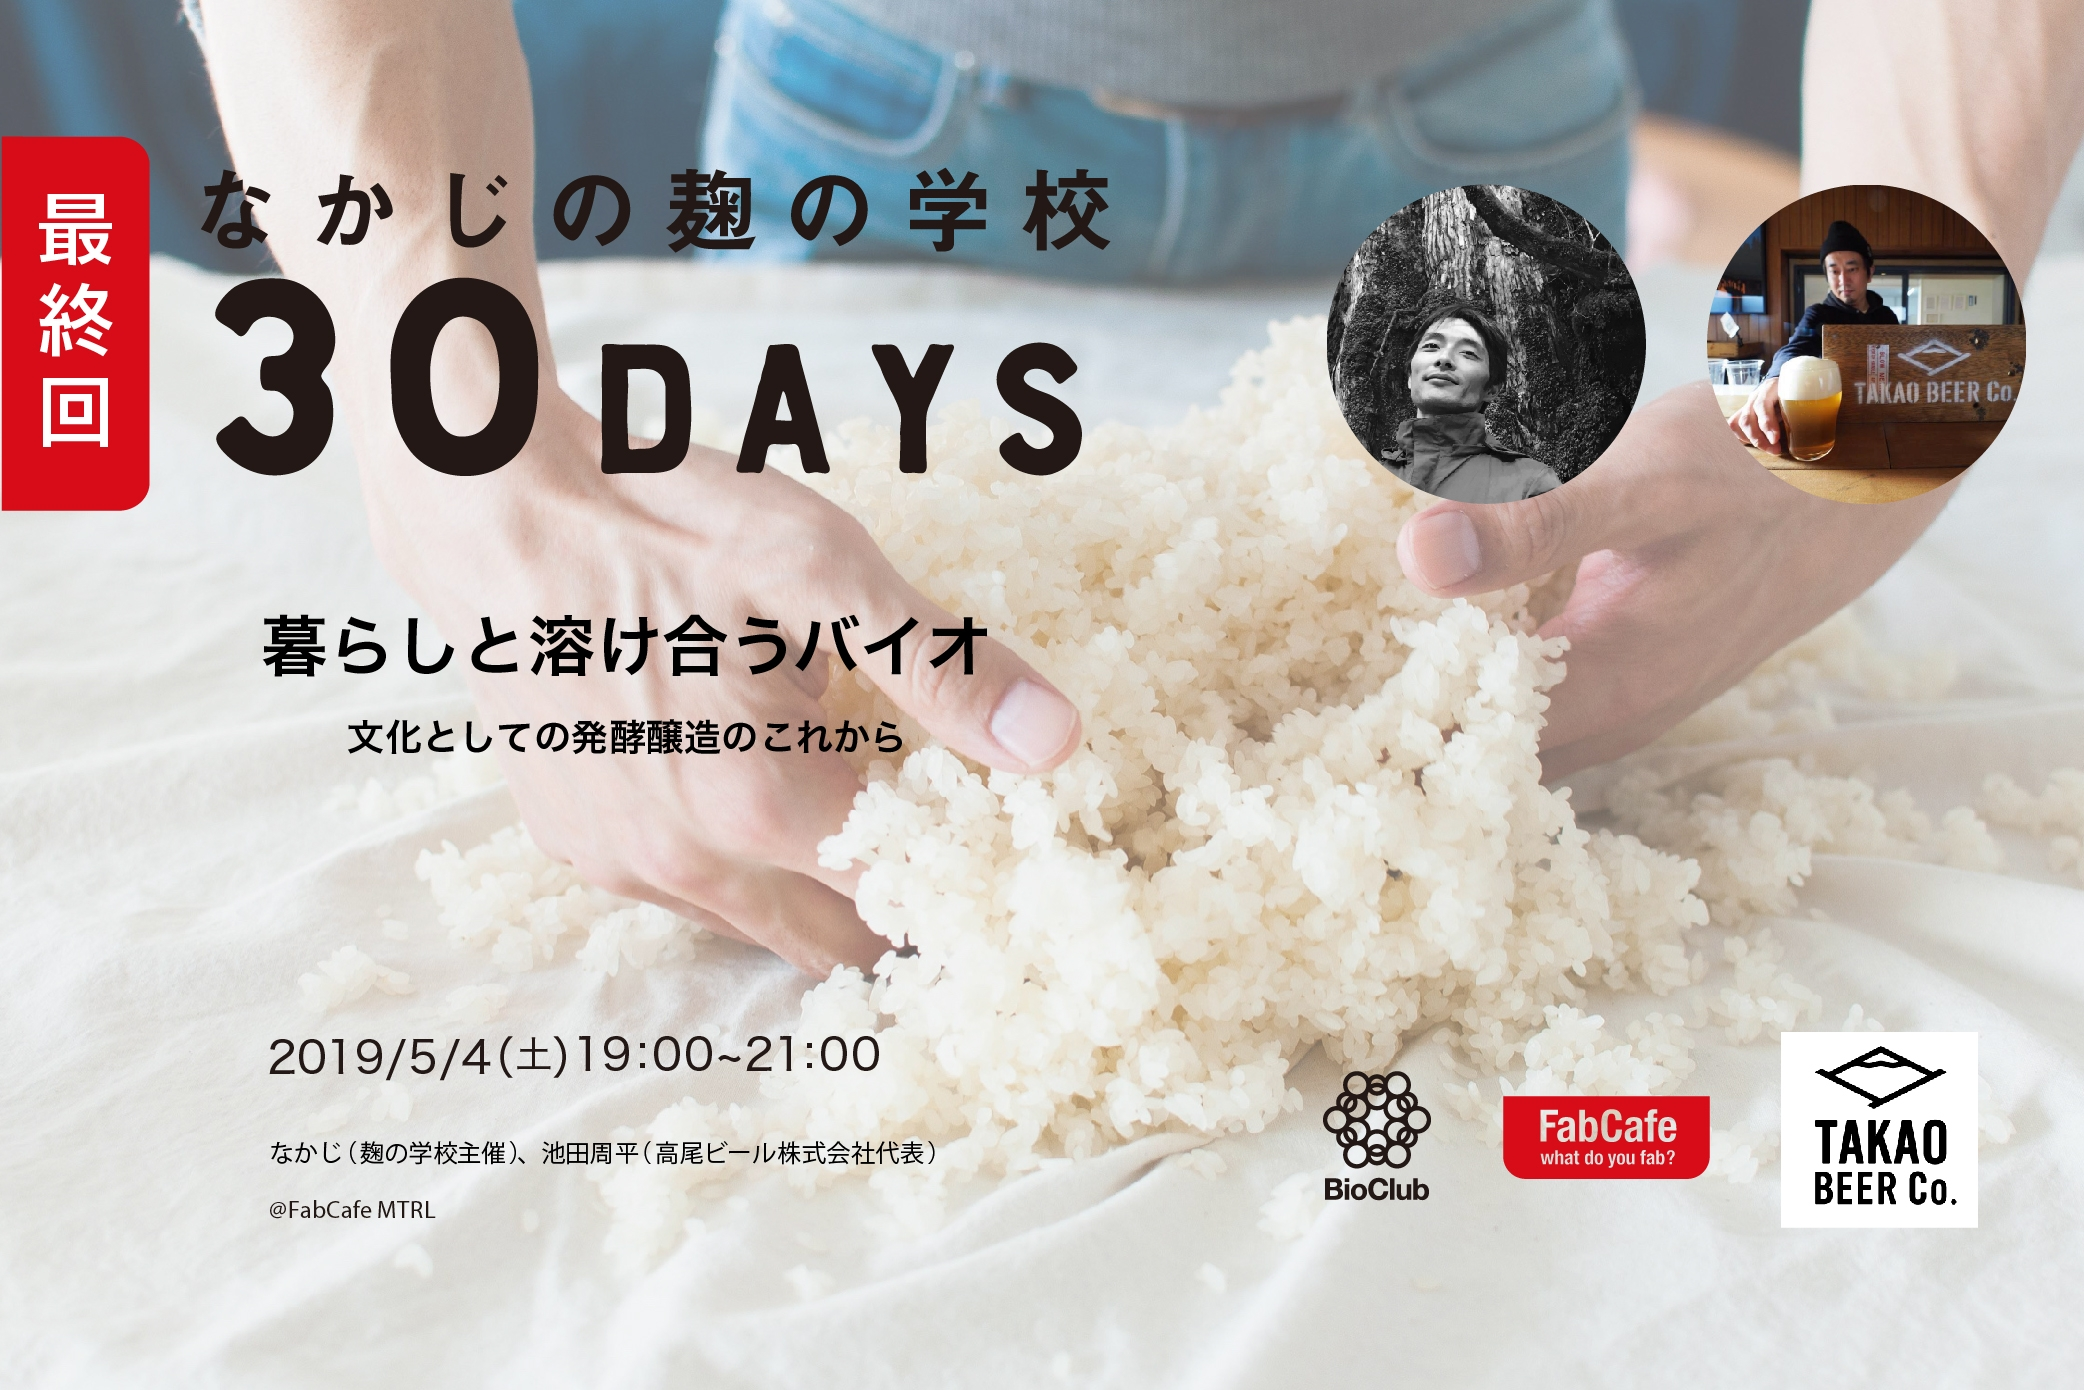 Koji School - Final Event, Living in Harmony with Bio - The Cultural Future of Fermentation